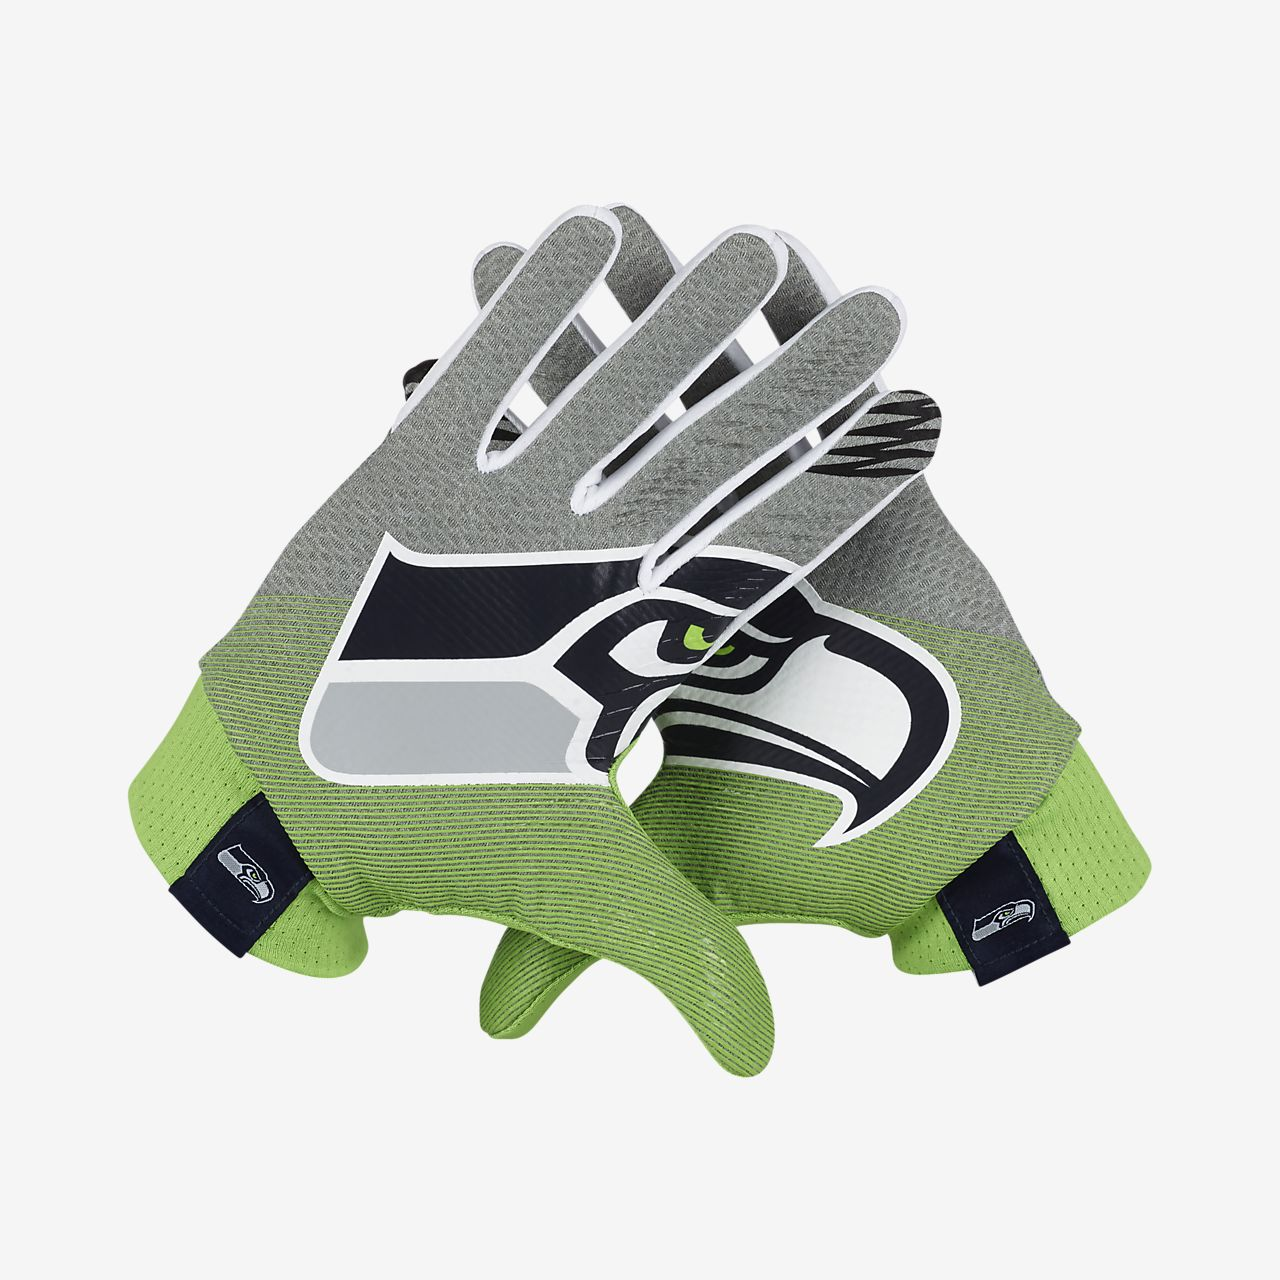 56fb0f53958 Nike Stadium (NFL Seahawks) Football Gloves. Nike.com